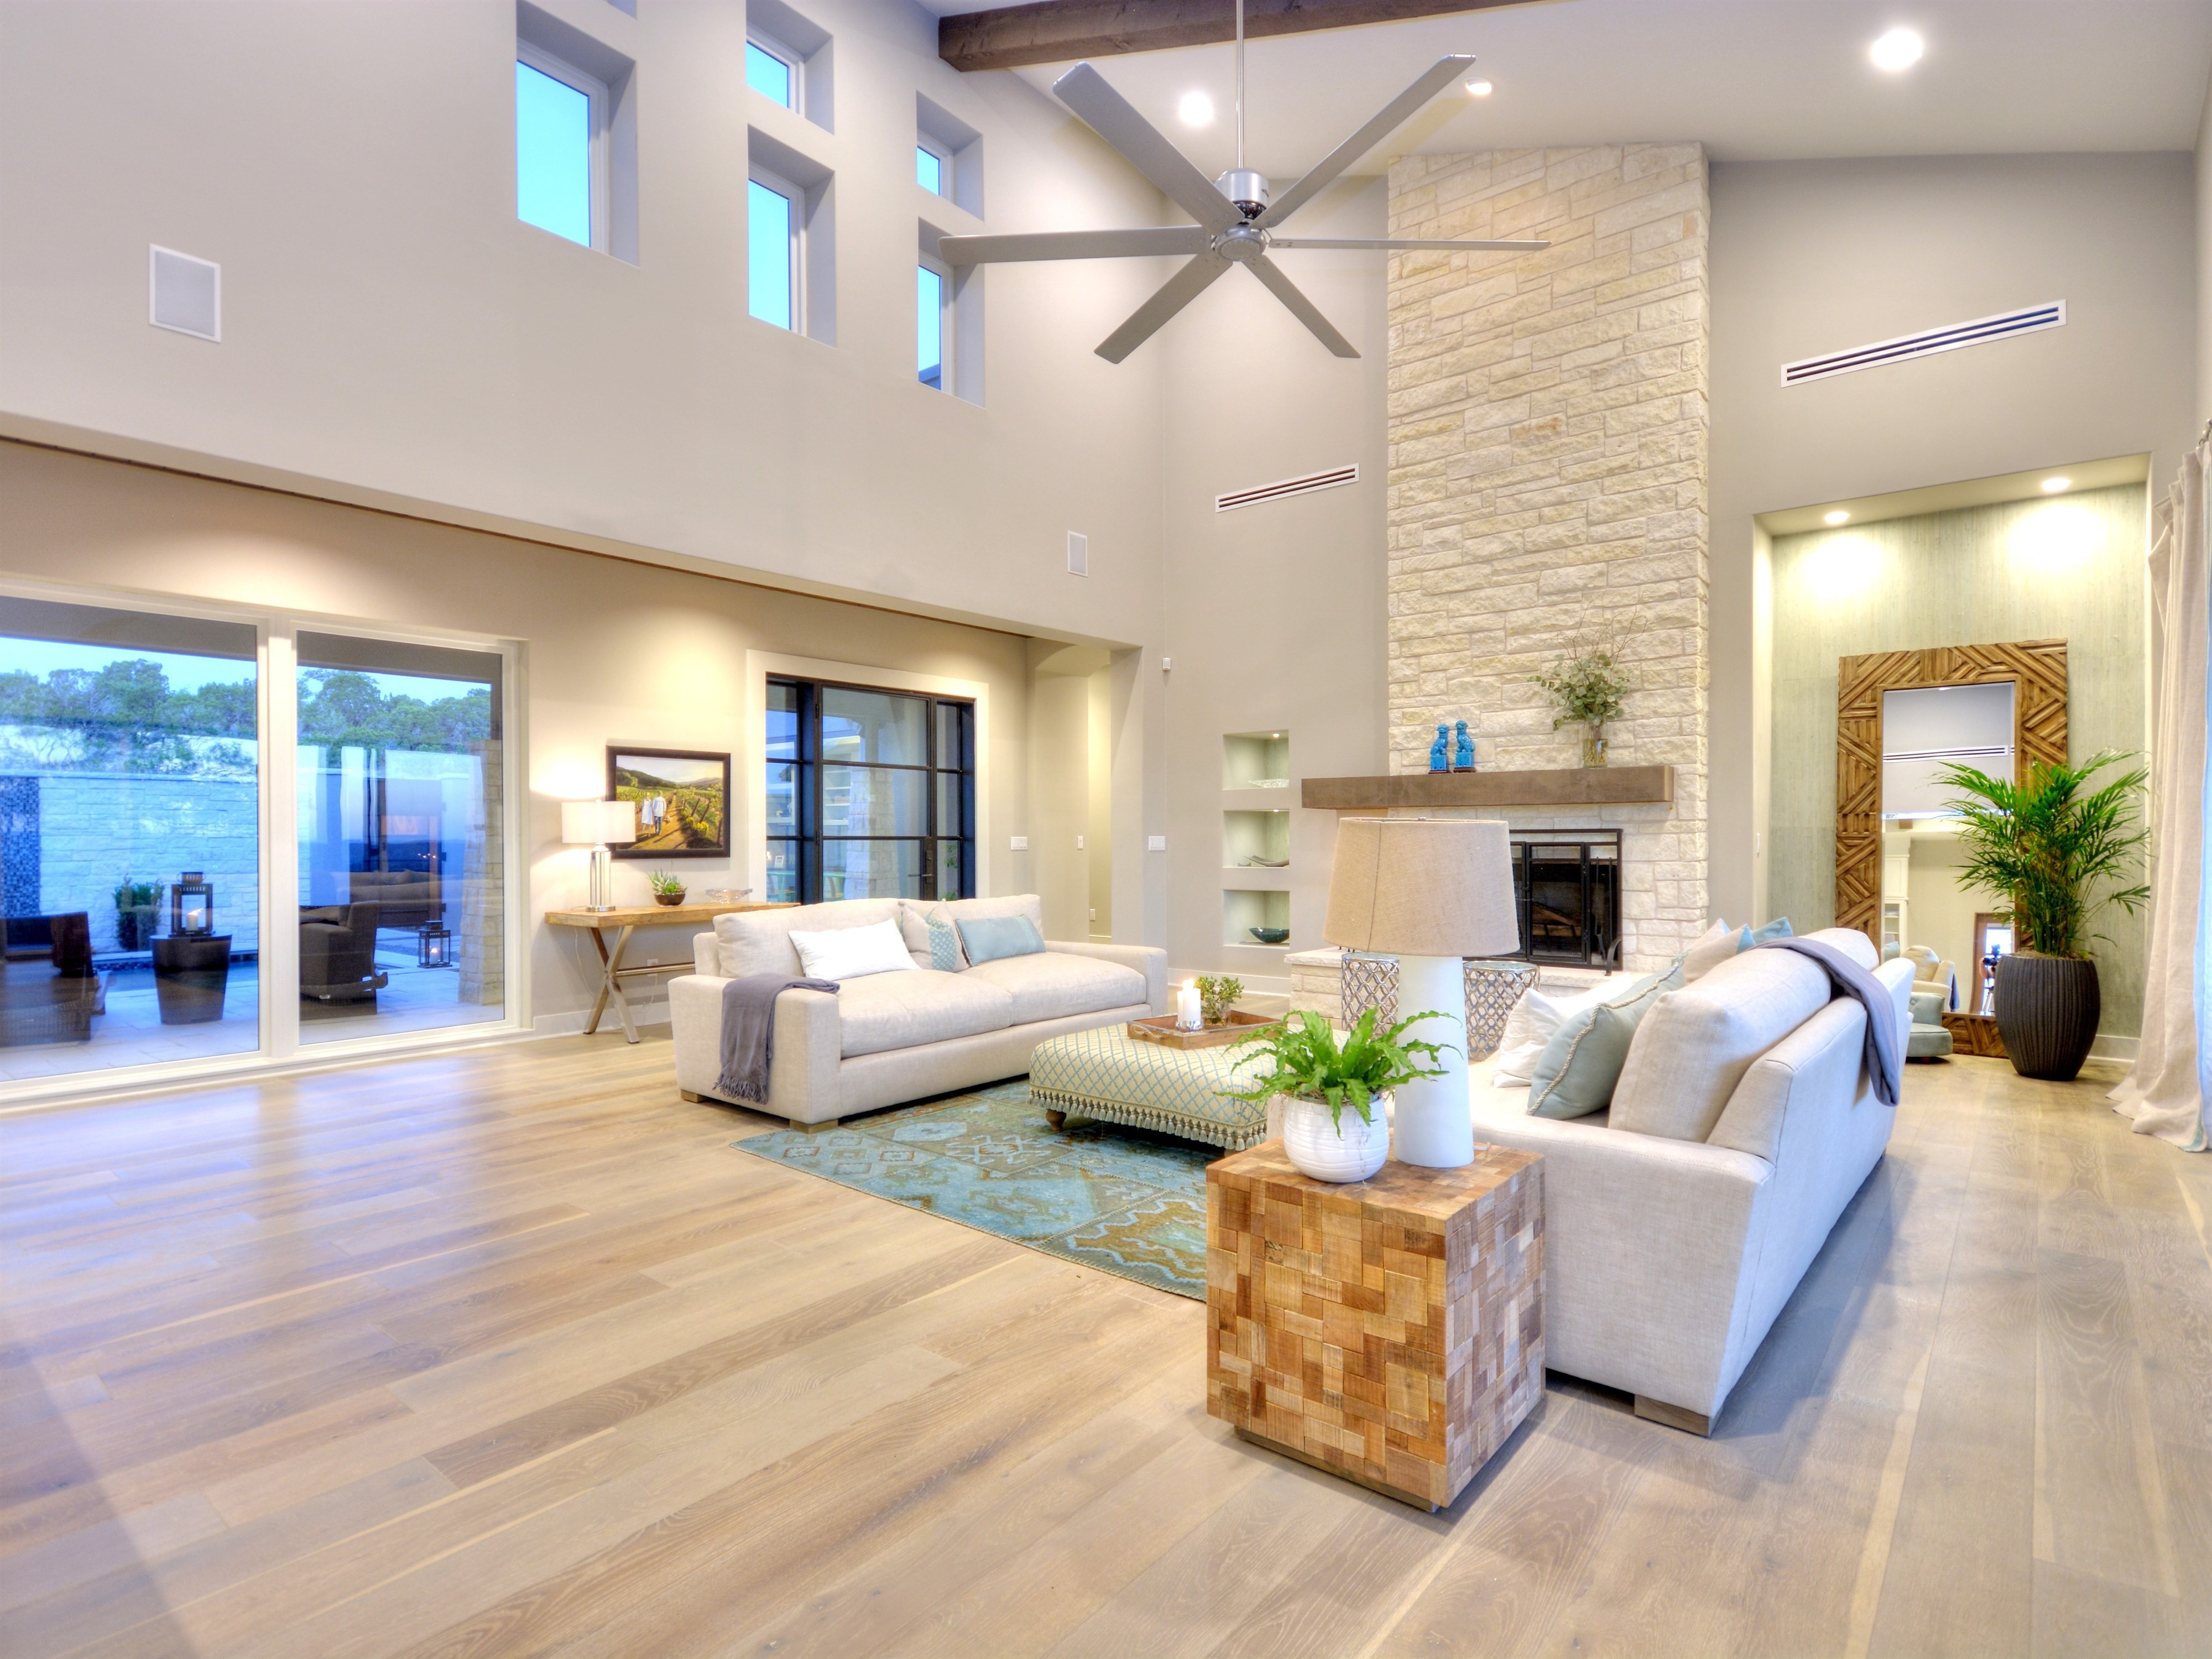 Contemporary Living Room With Light Hardwood Floors (View 1 of 15)